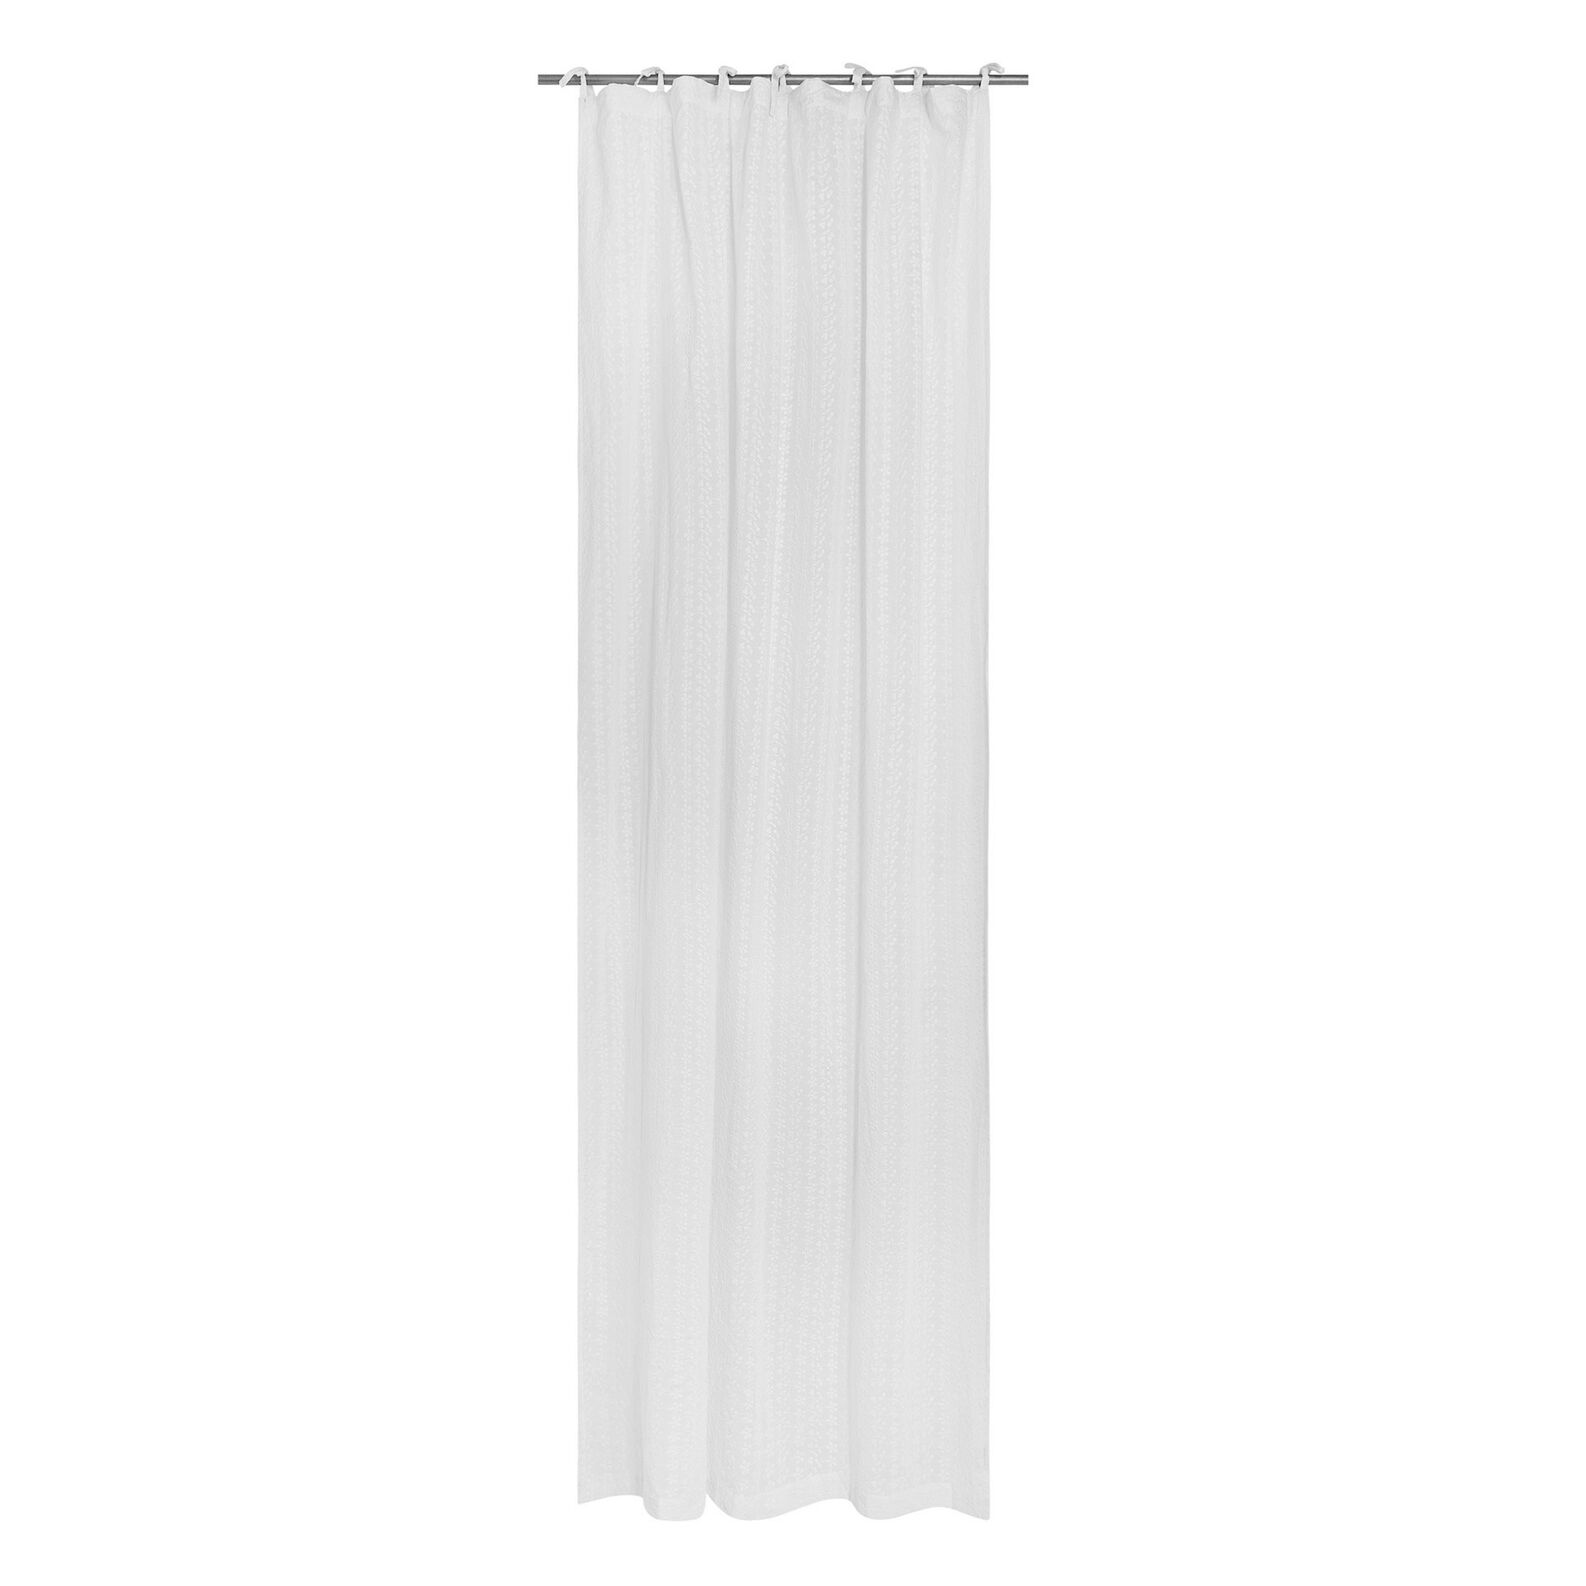 100% cotton broderie anglaise curtain with laces